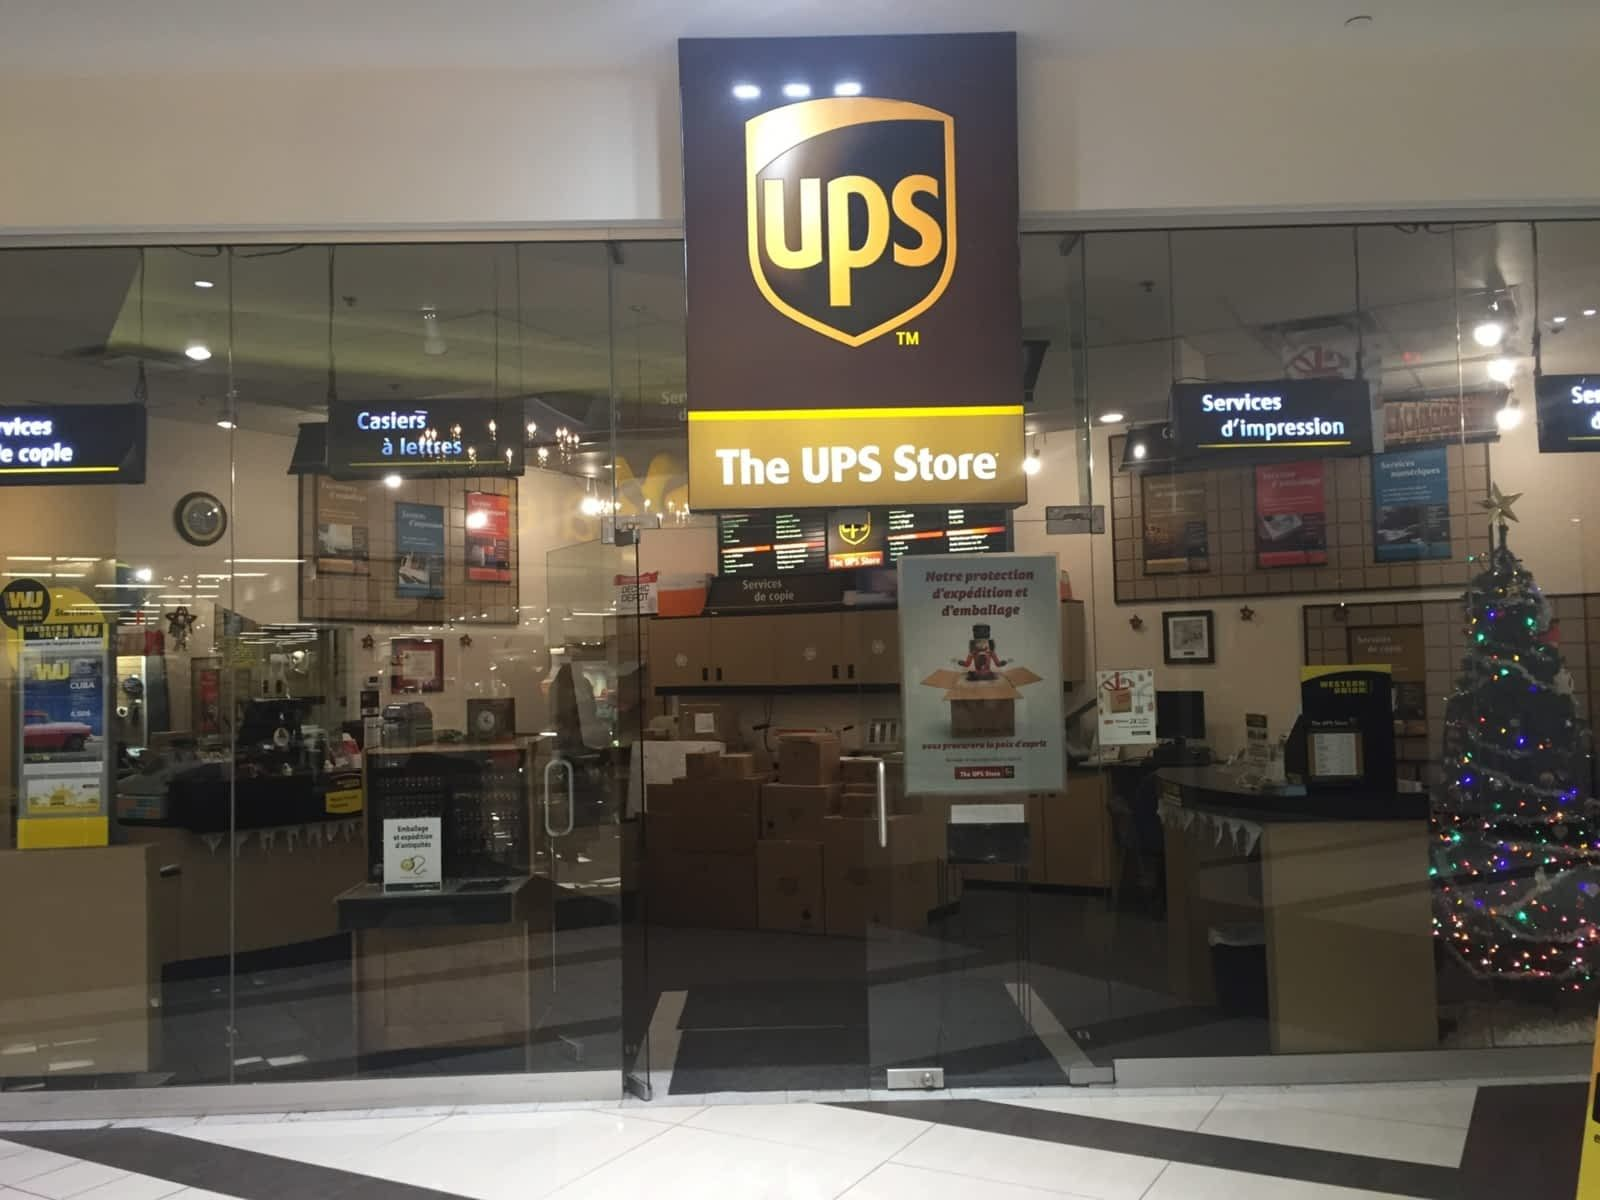 Owning a UPS Store Franchise is an experience unlike any